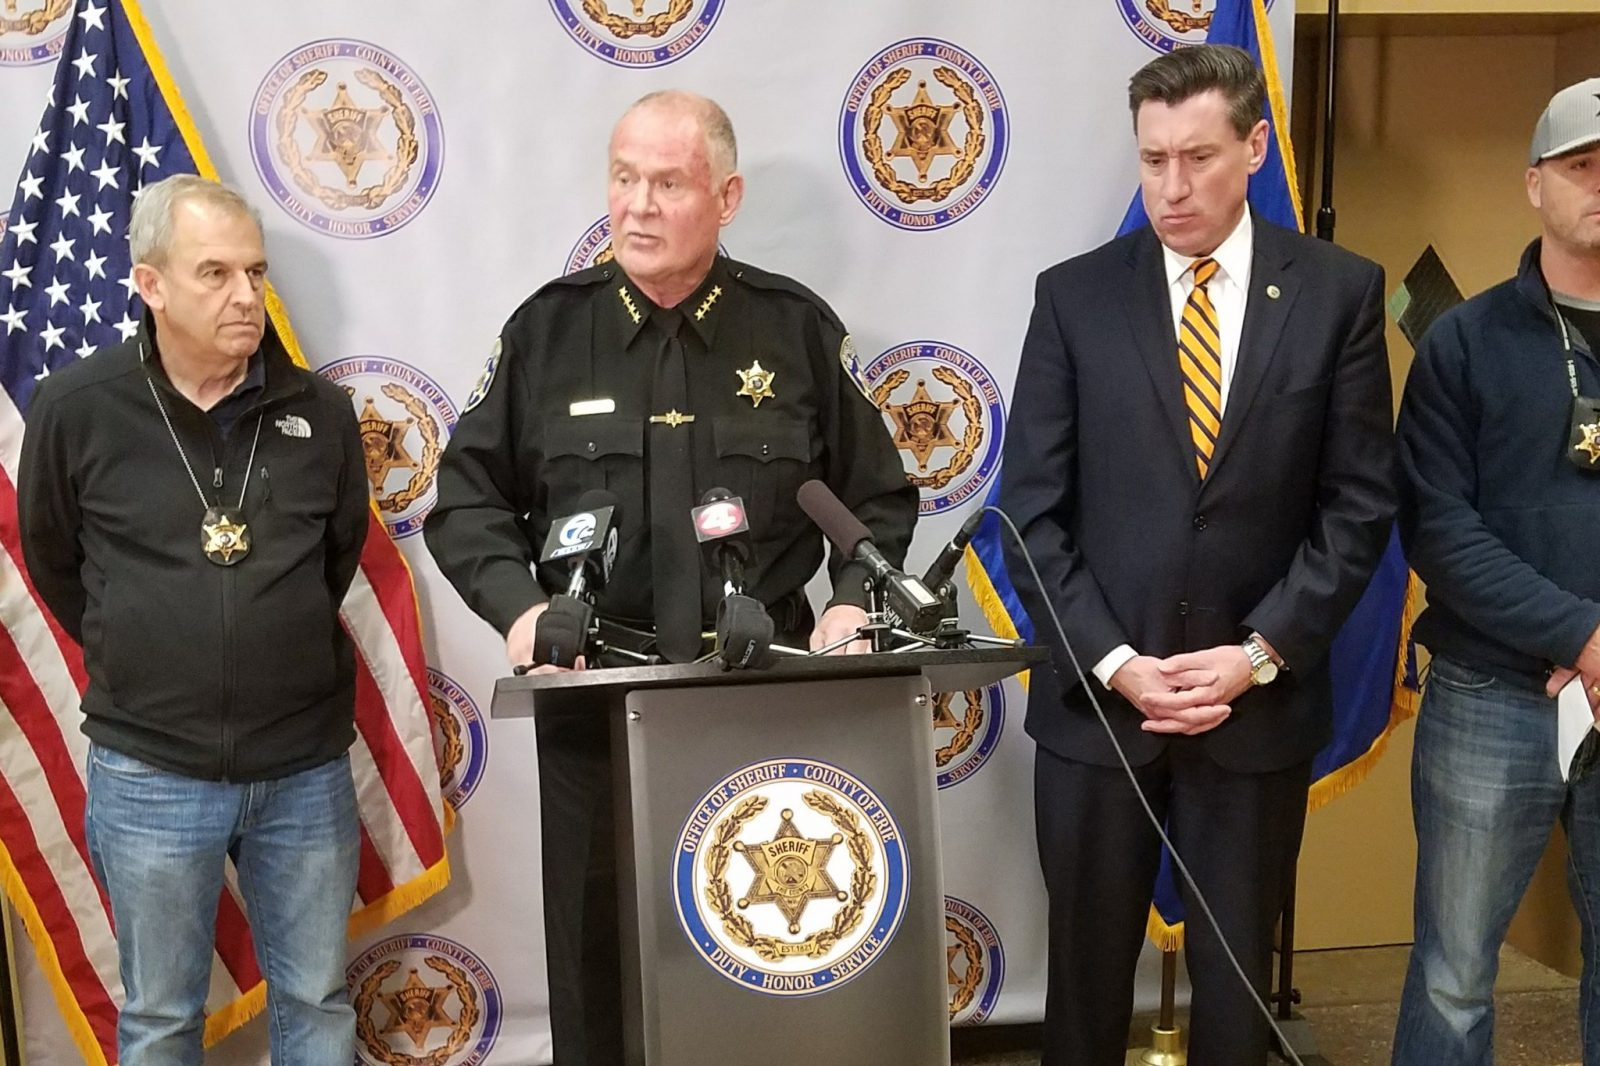 Sheriff Timothy Howard, at podium, along with District Attorney John Flynn, right, and other law enforcement officials, announces arrest of Eddie Fields. (Harold McNeil/Buffalo News)